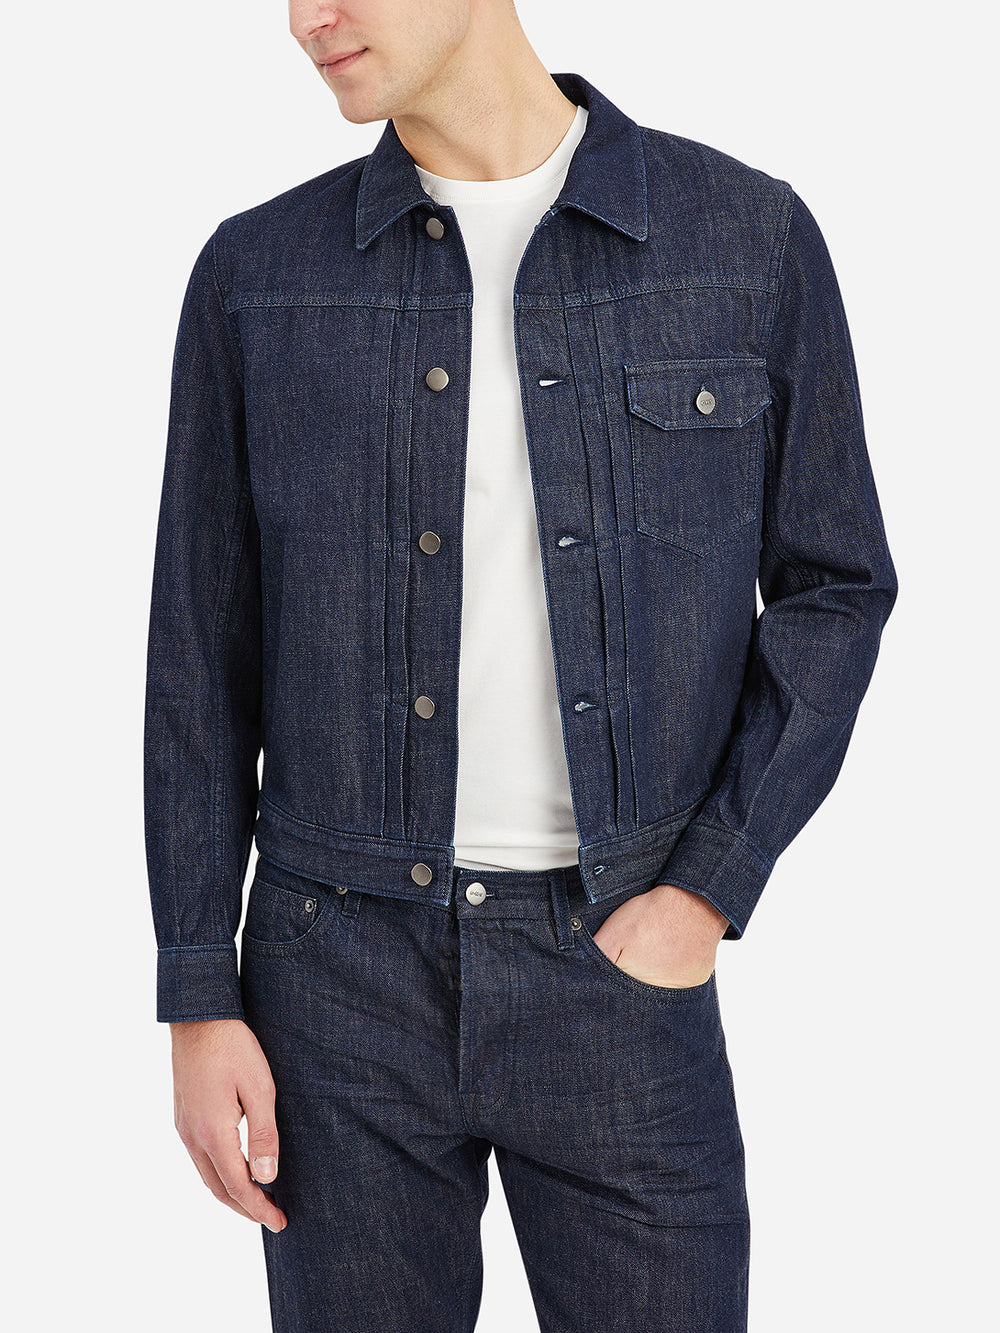 Dark Indigo Tripp Denim Trucker Jacket Men's cotton jackets ONS Clothing